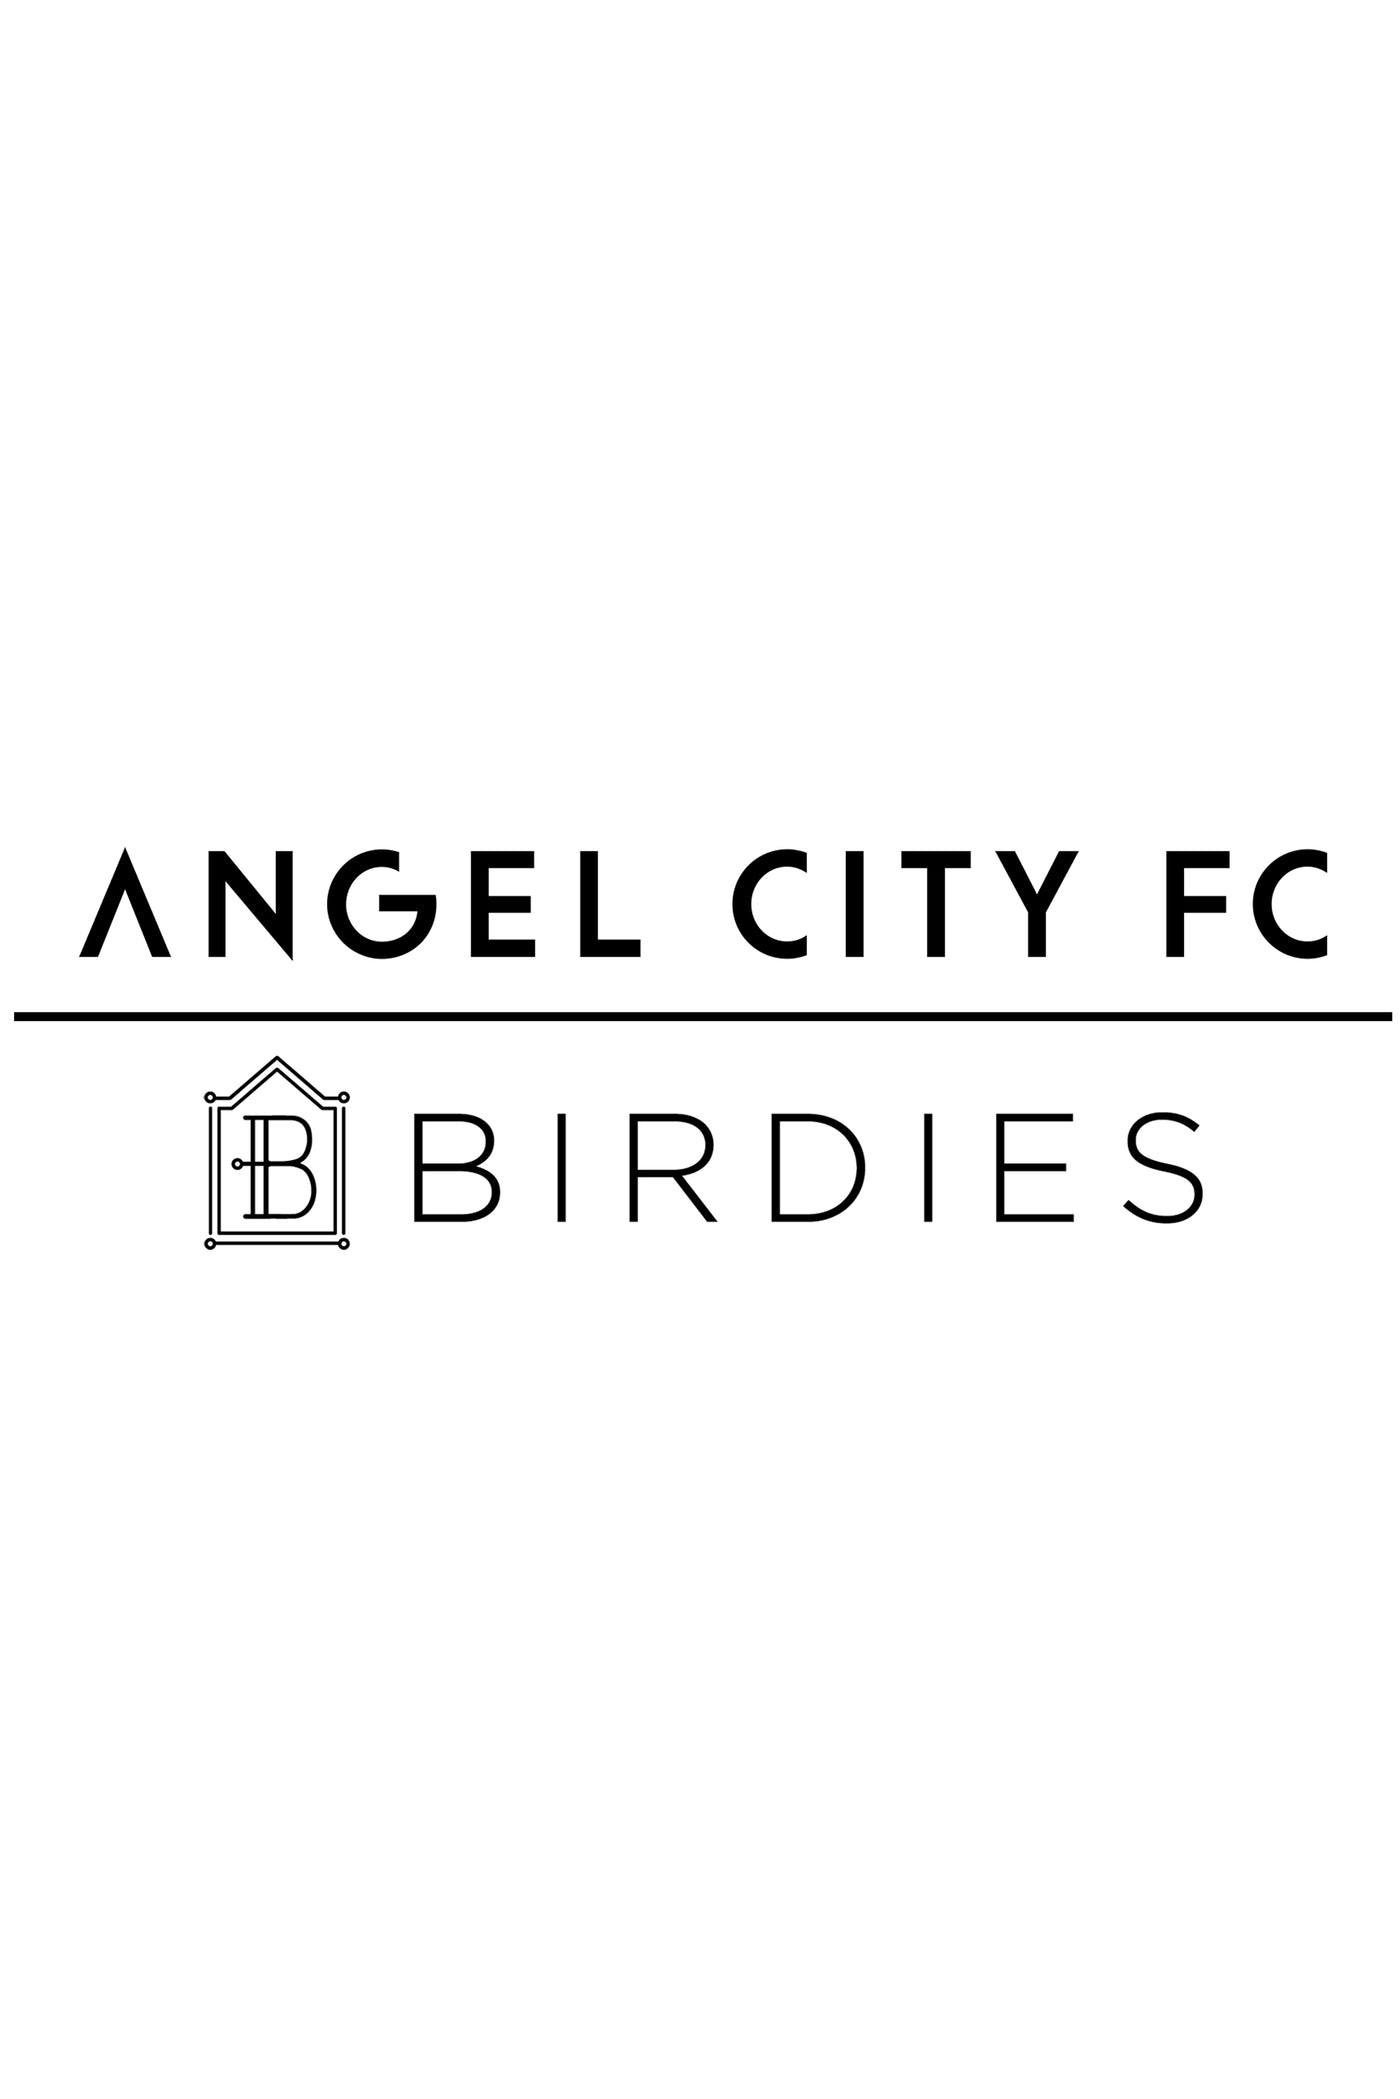 Birdies x Angel City FC: Founding Sleeve Sponsor